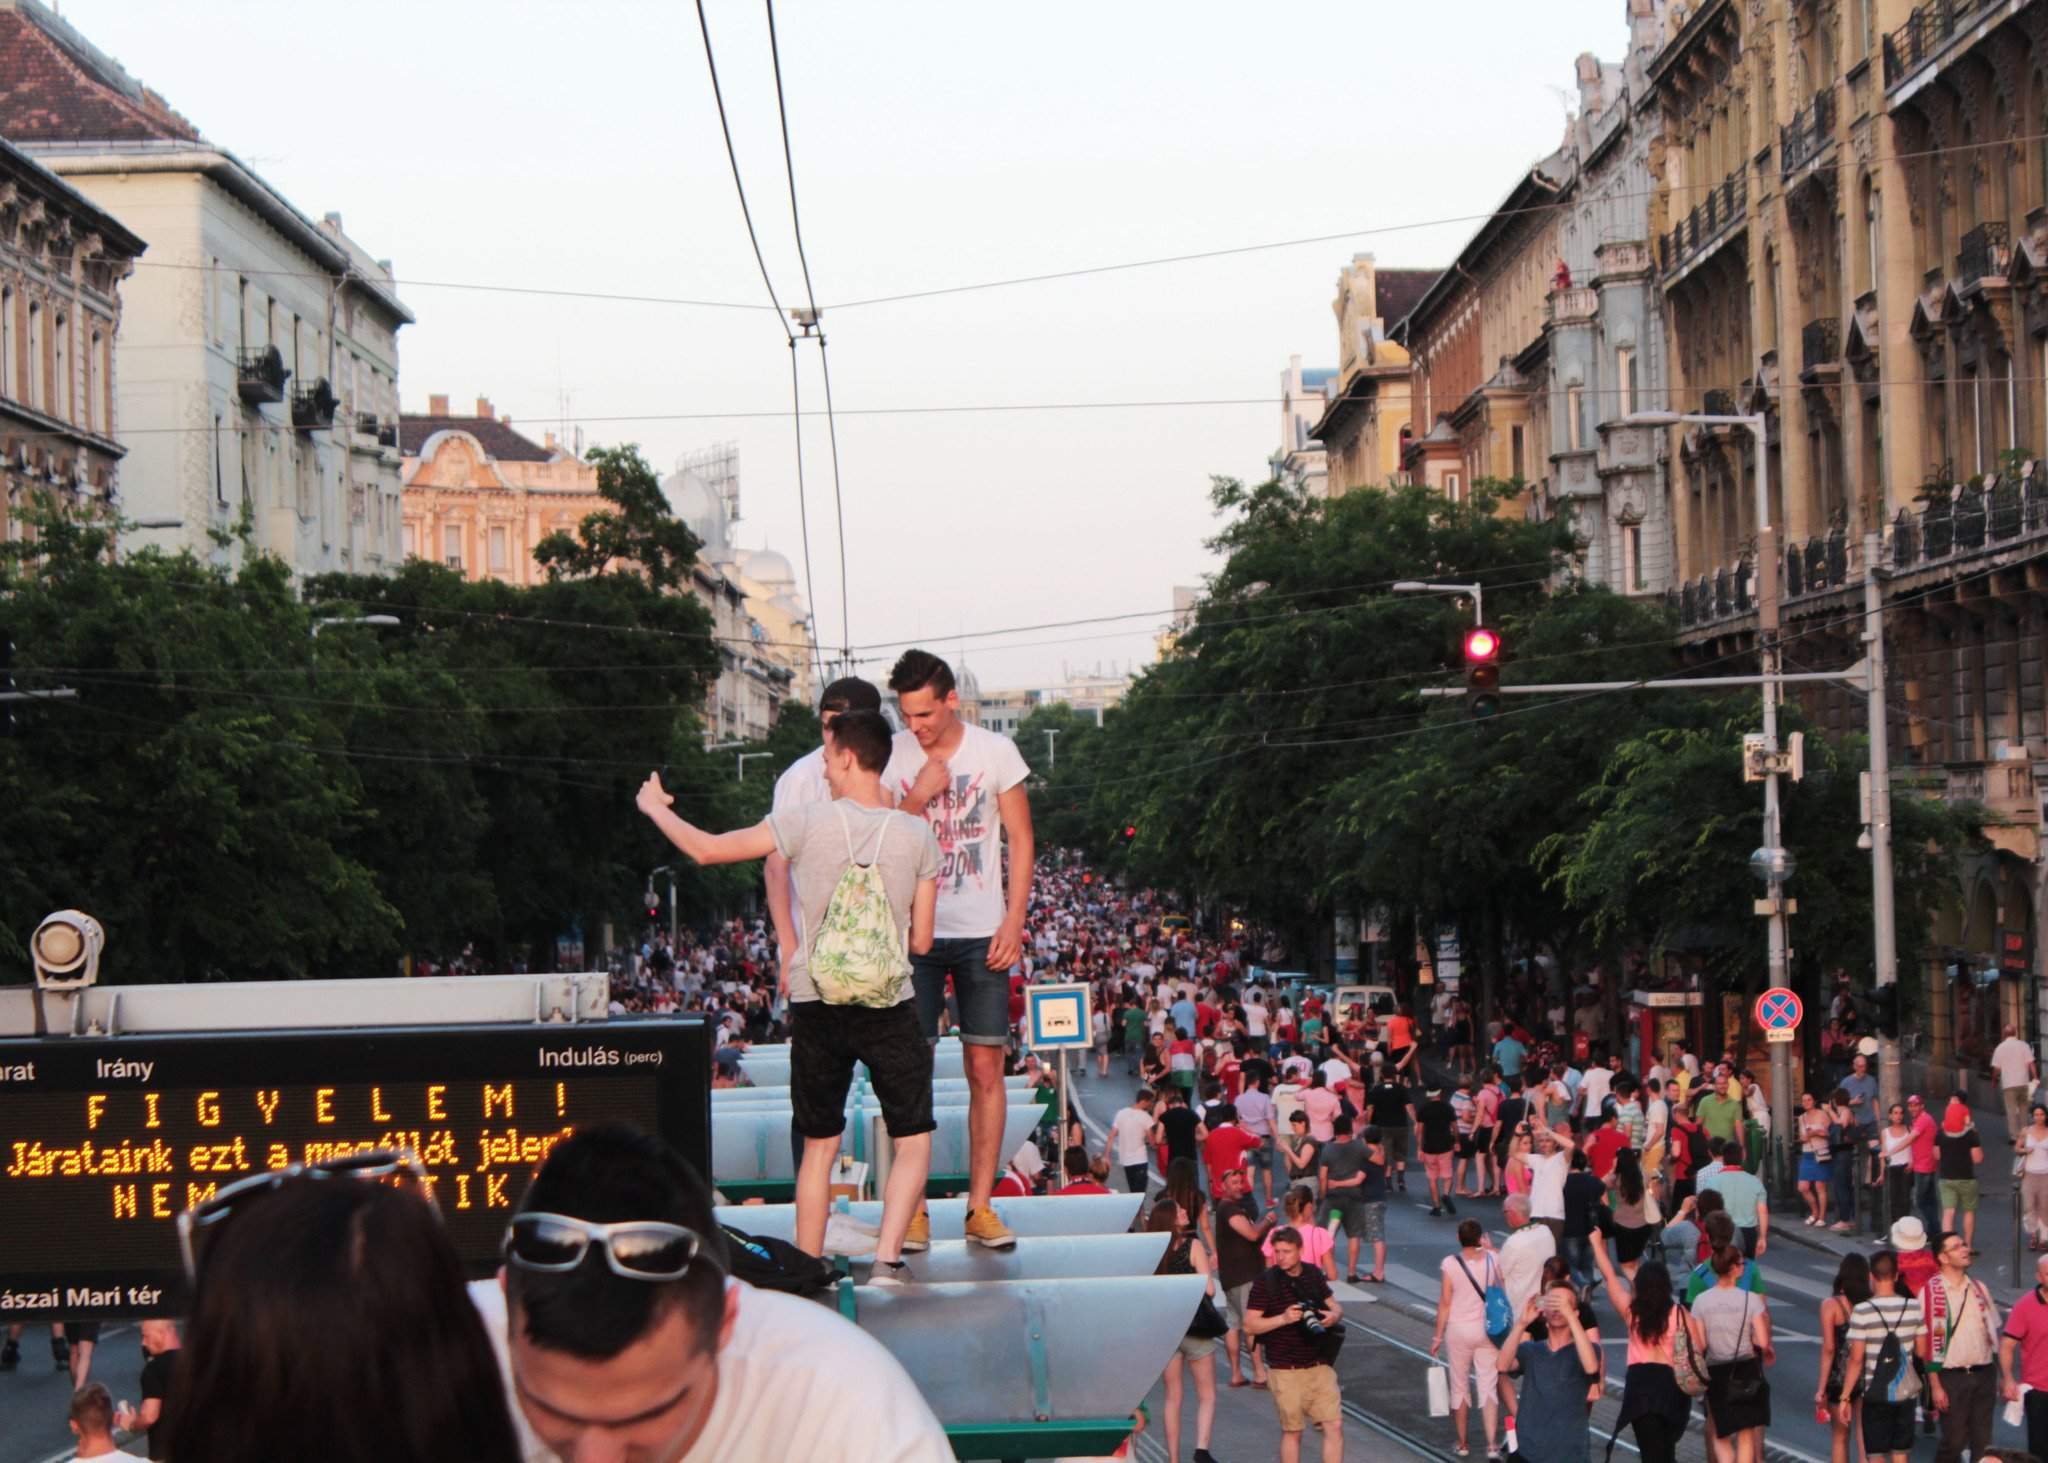 Thousands hail National Team's football players in Hungary – Photos